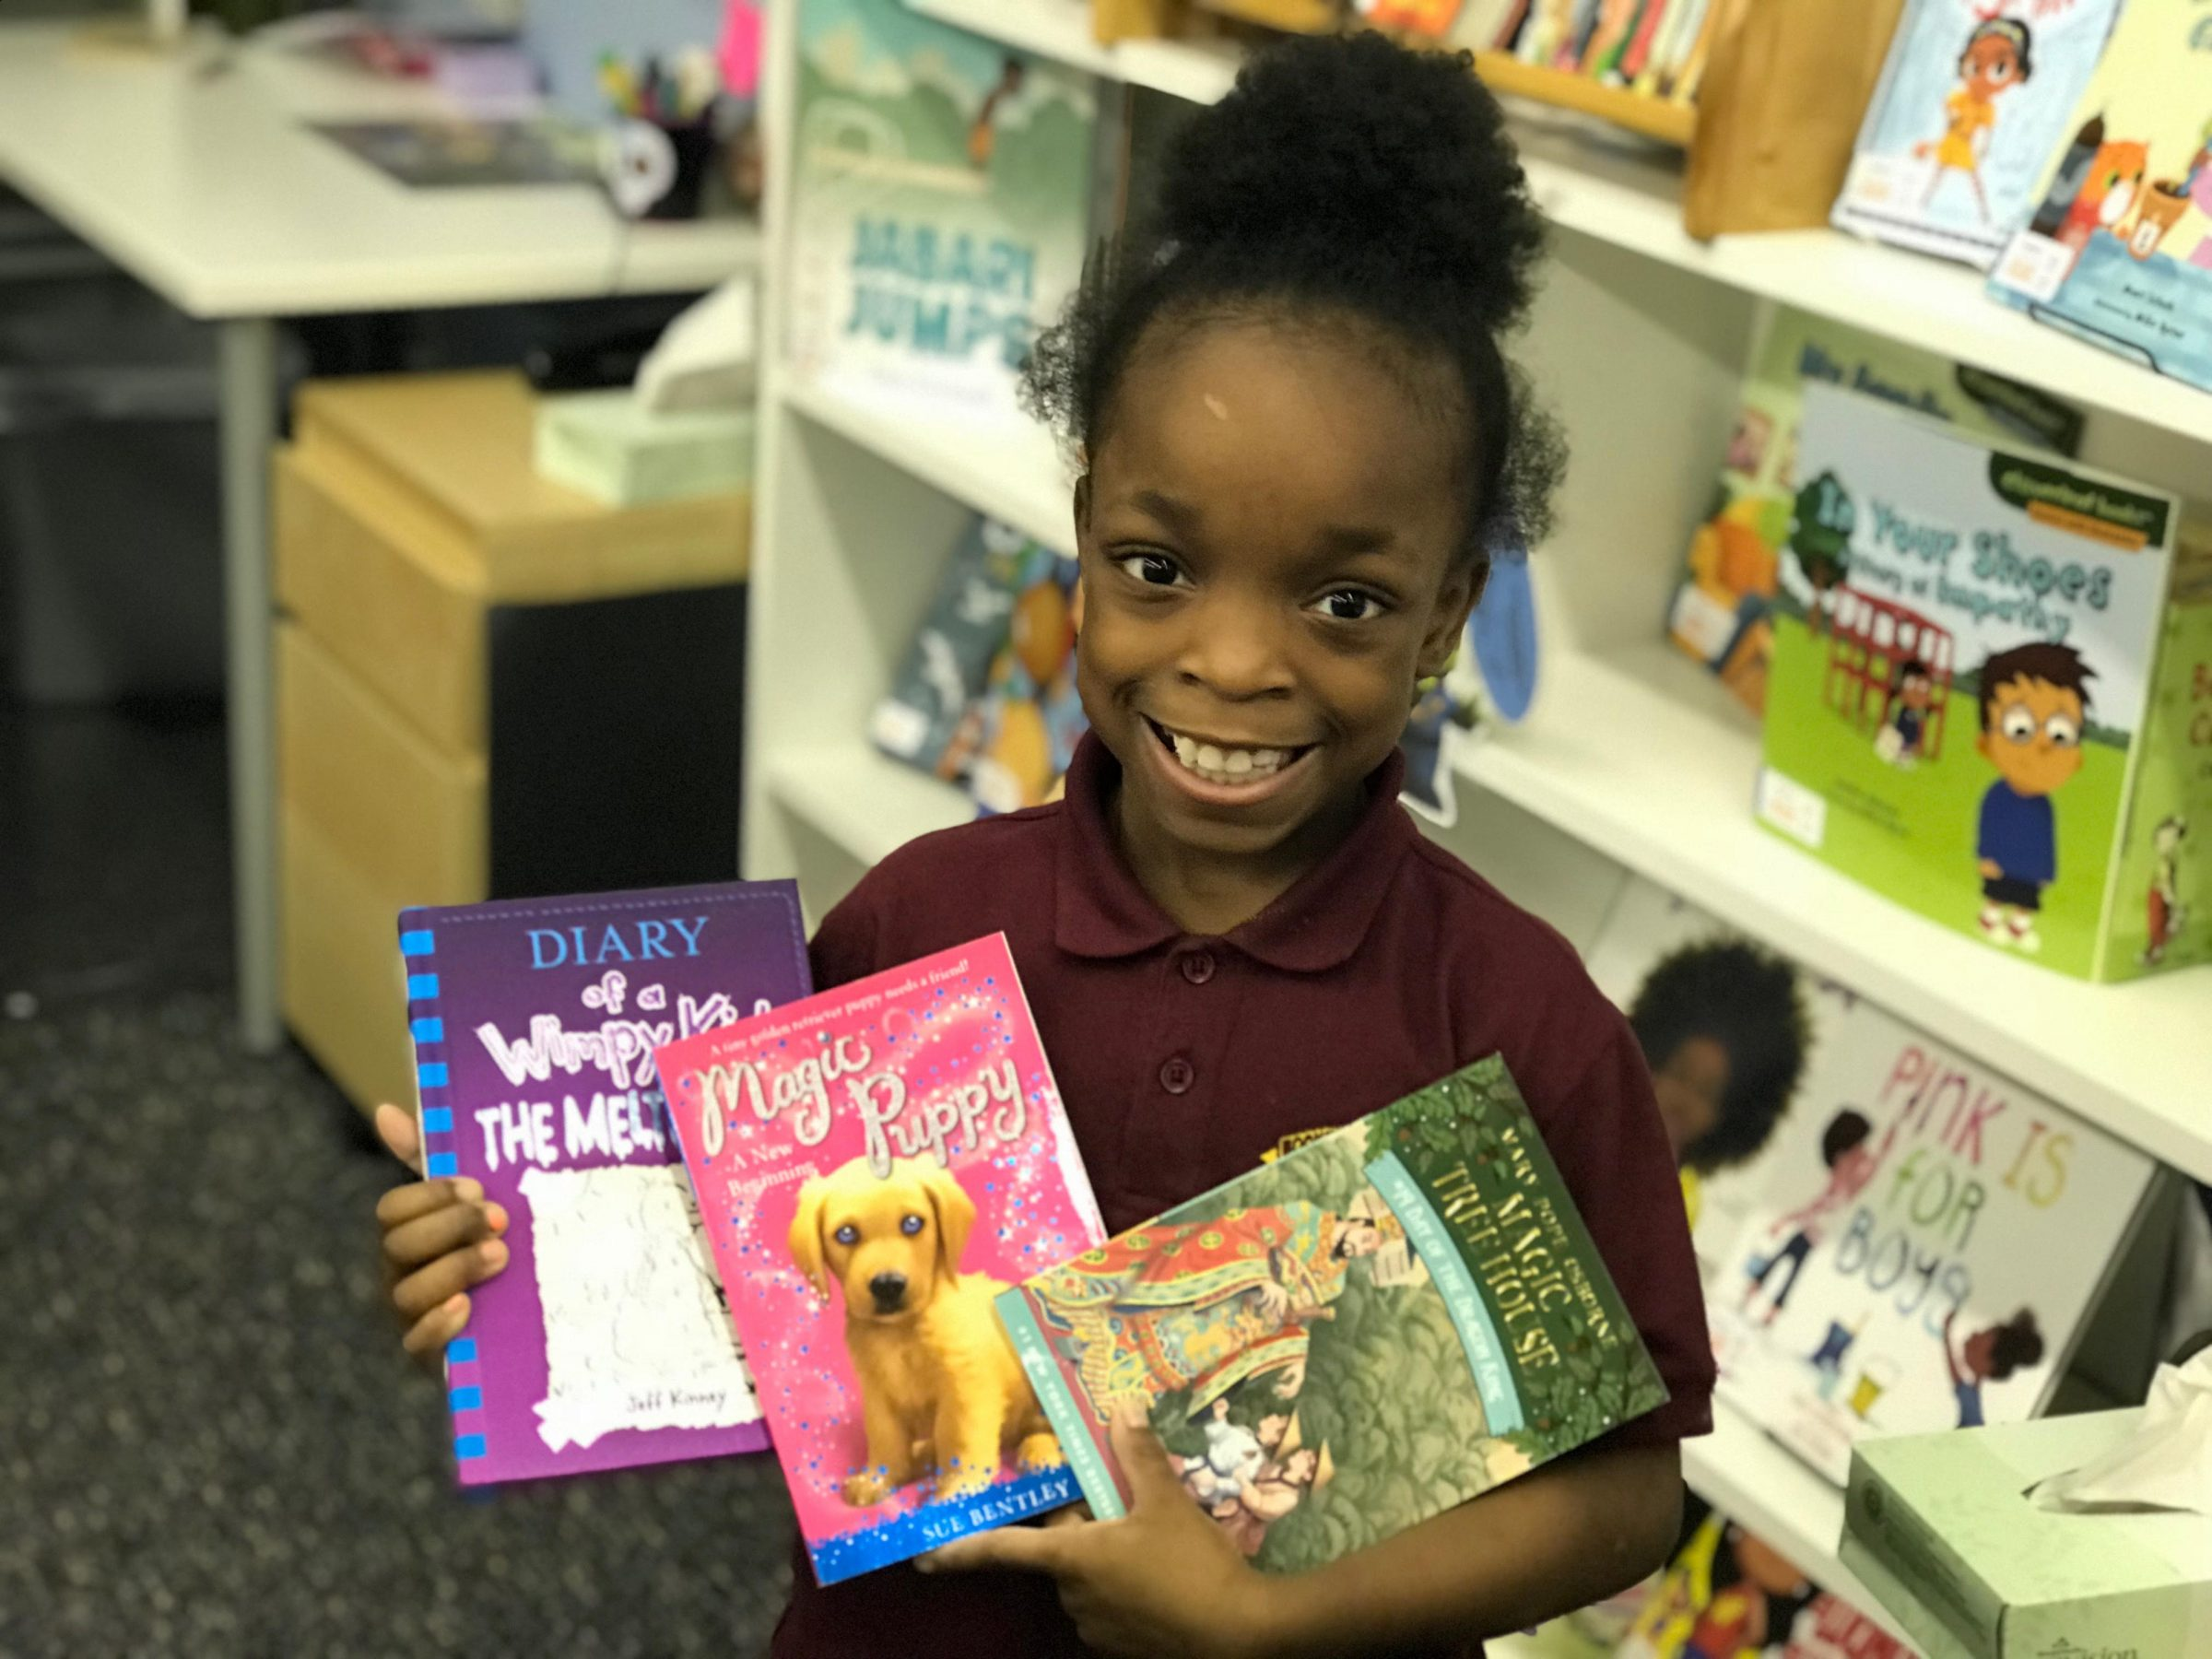 NHR student happily displays her book selection.